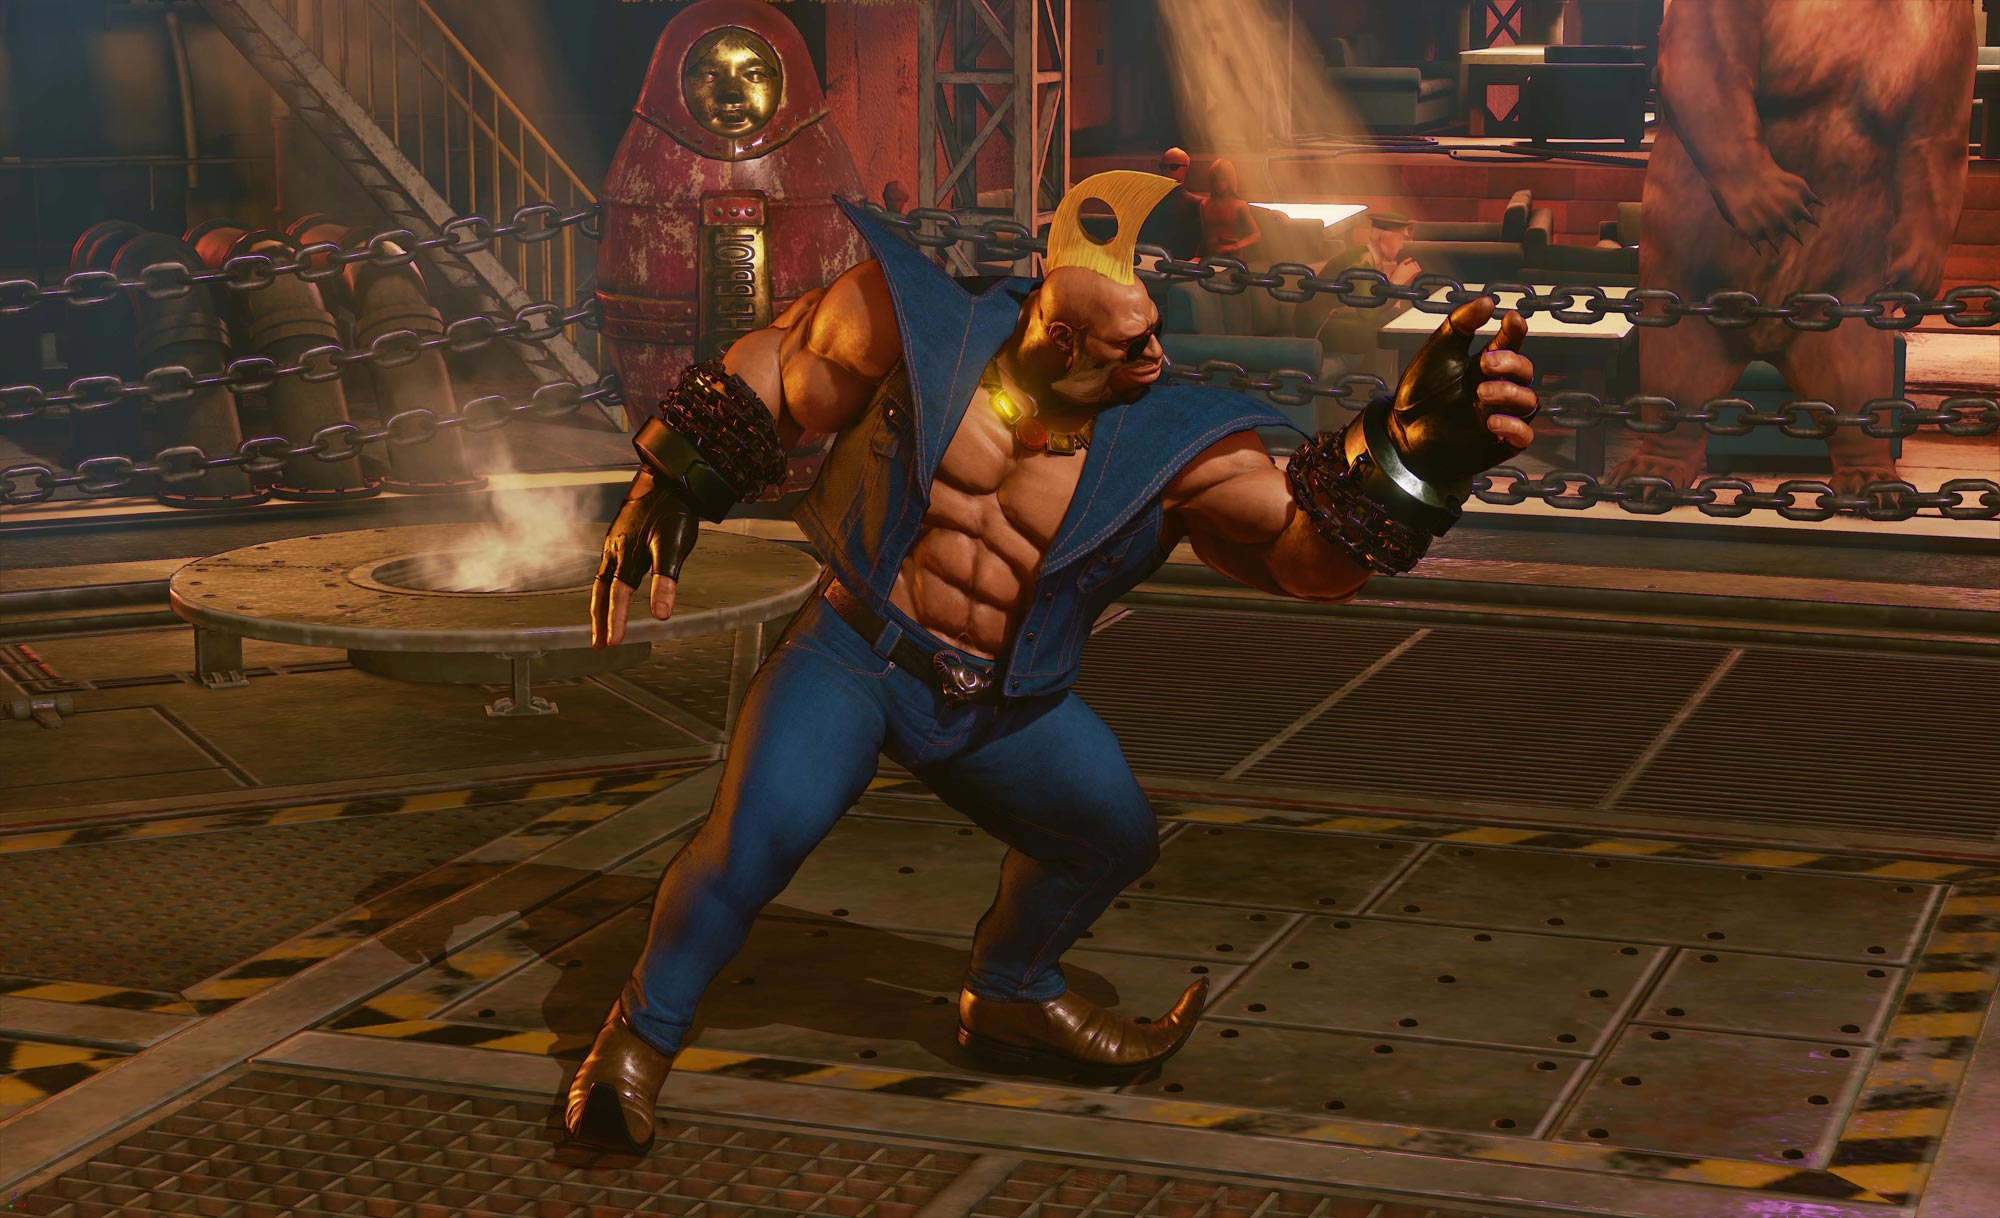 New hoilday and classic costumes in Street Fighter 5 5 out of 10 image gallery